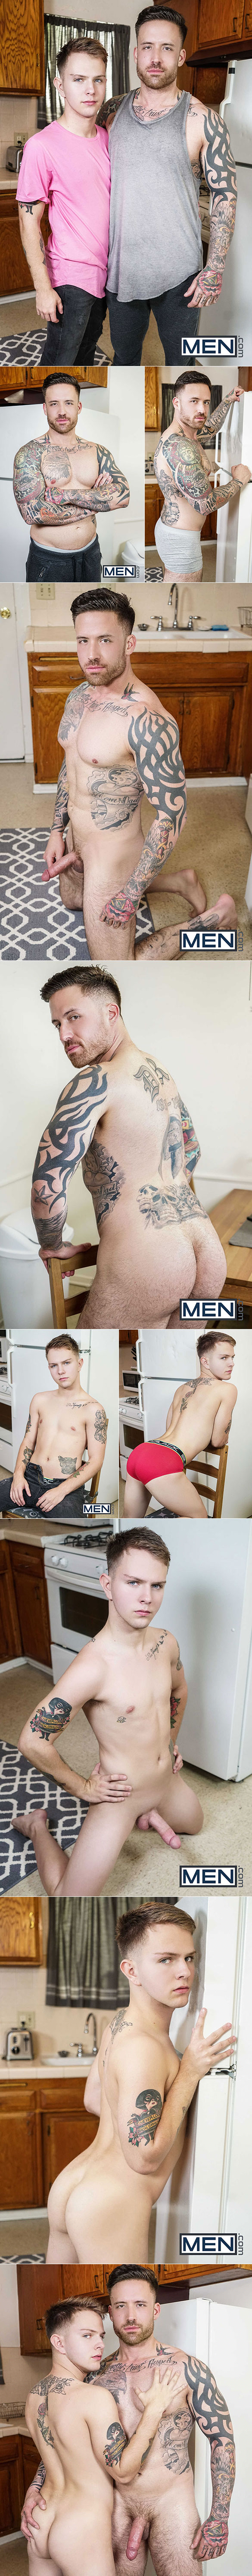 "Men.com: Jordan Levine drills Timothy Drake in ""Private Lessons, Part 2"""